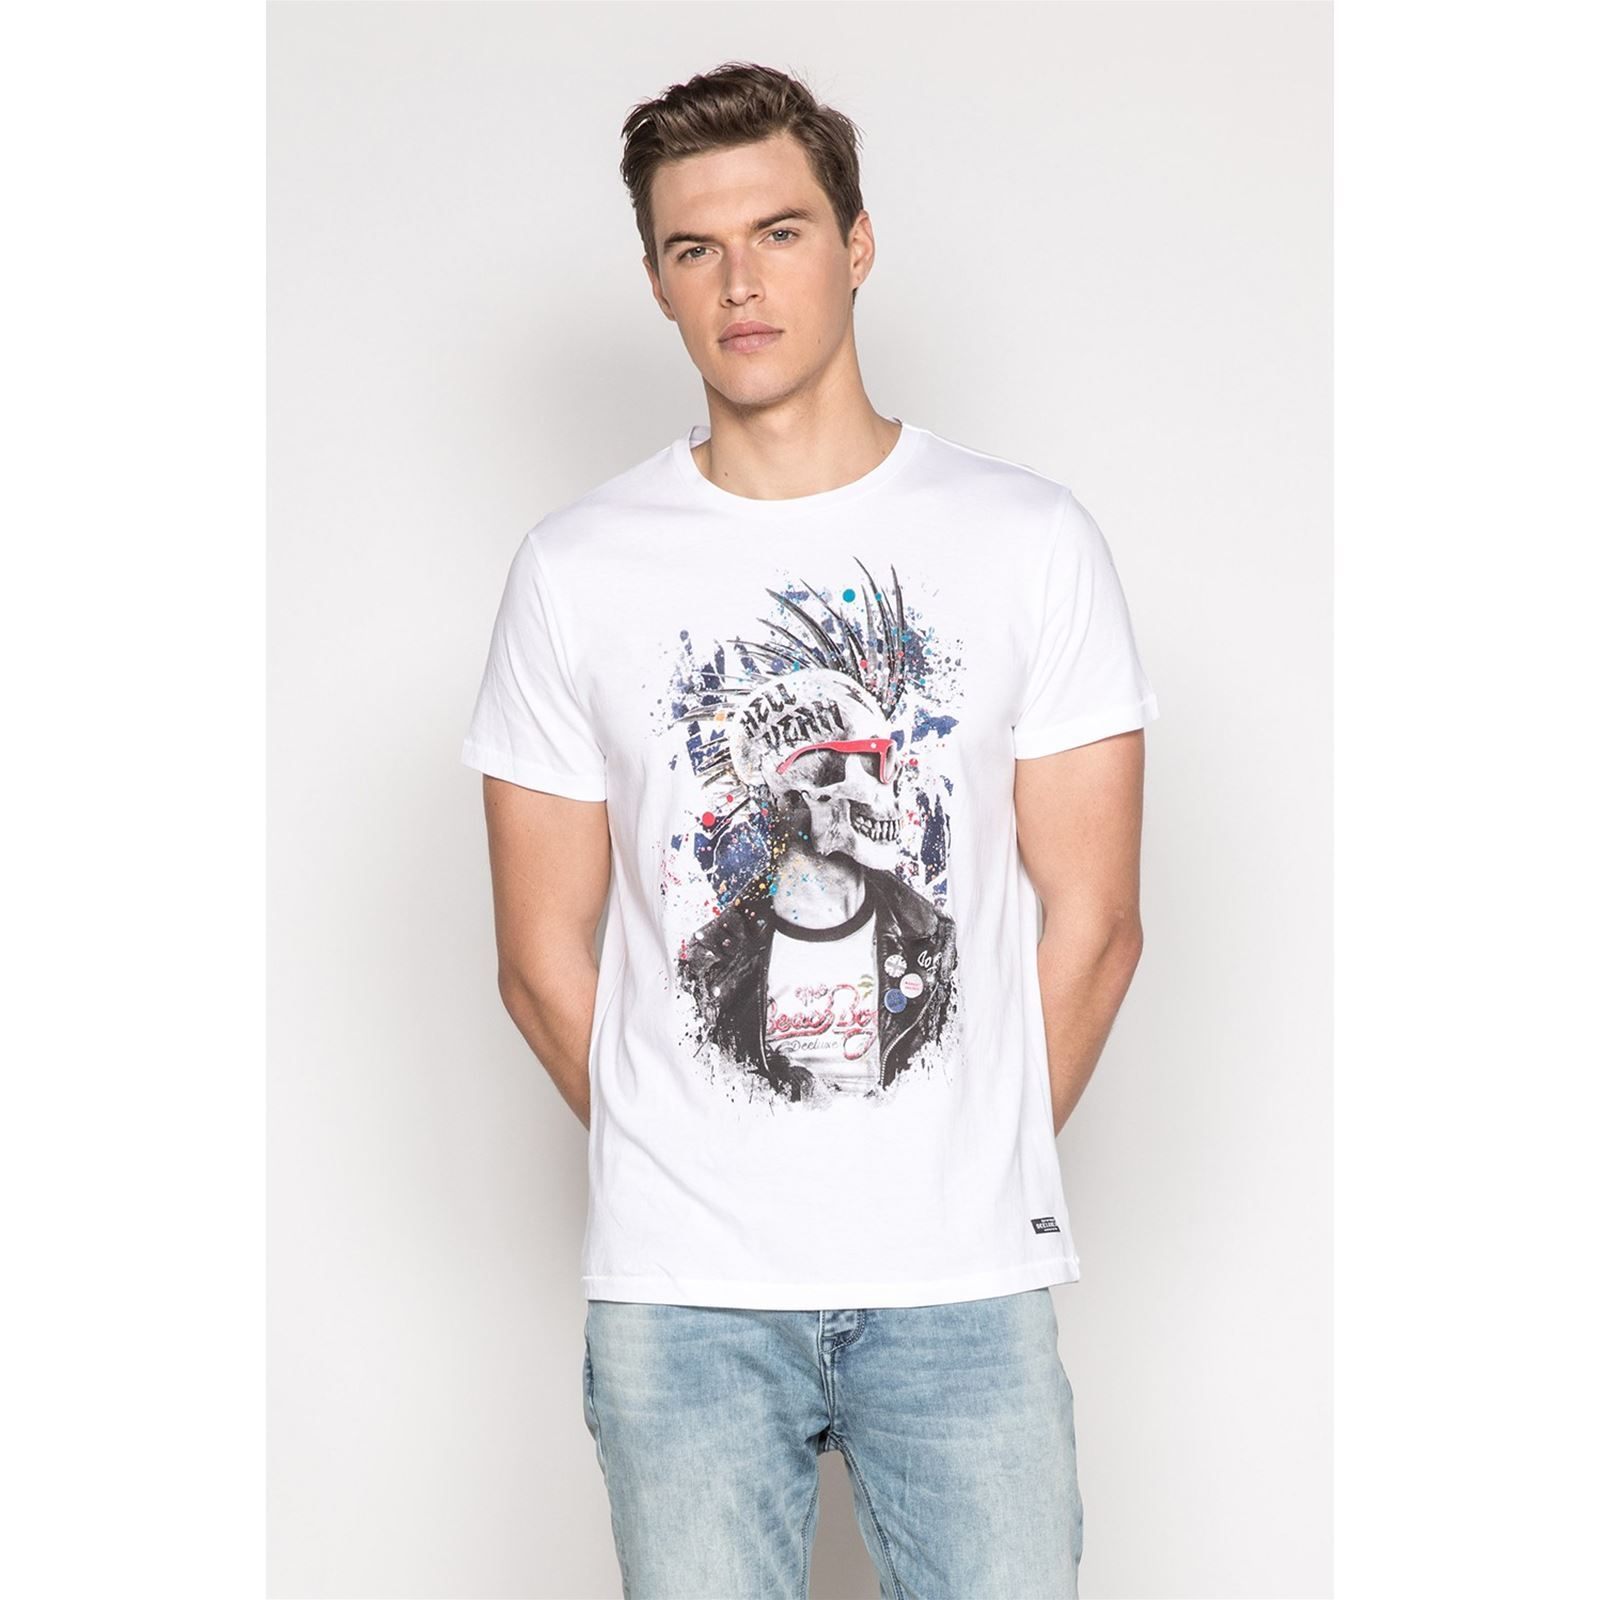 Courtes shirt Manches Blanc Deeluxe V Homme EnfieldonT 35RqAL4j